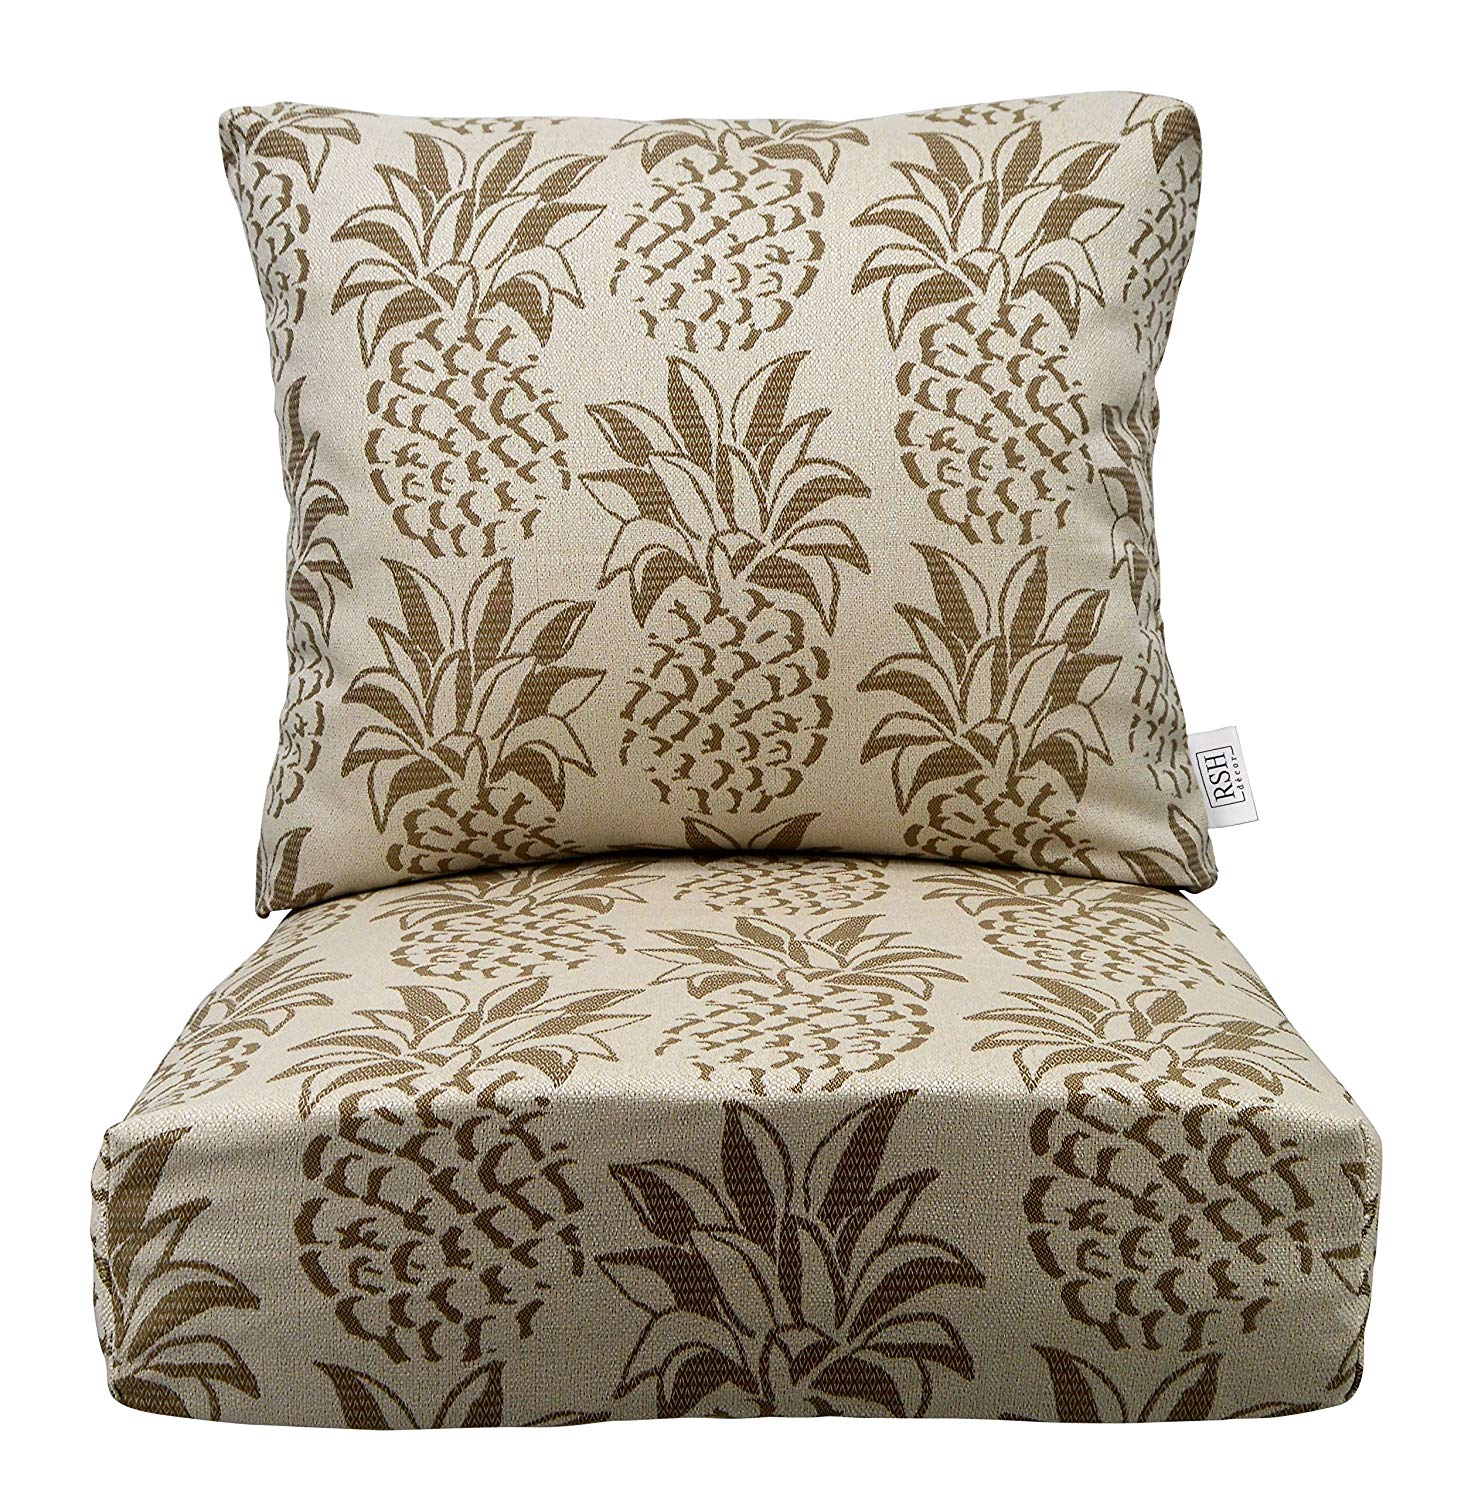 Get Quotations Rsh Décor Indoor Outdoor Woven Pinele Cushion Sets For Patio Deep Seating Chair